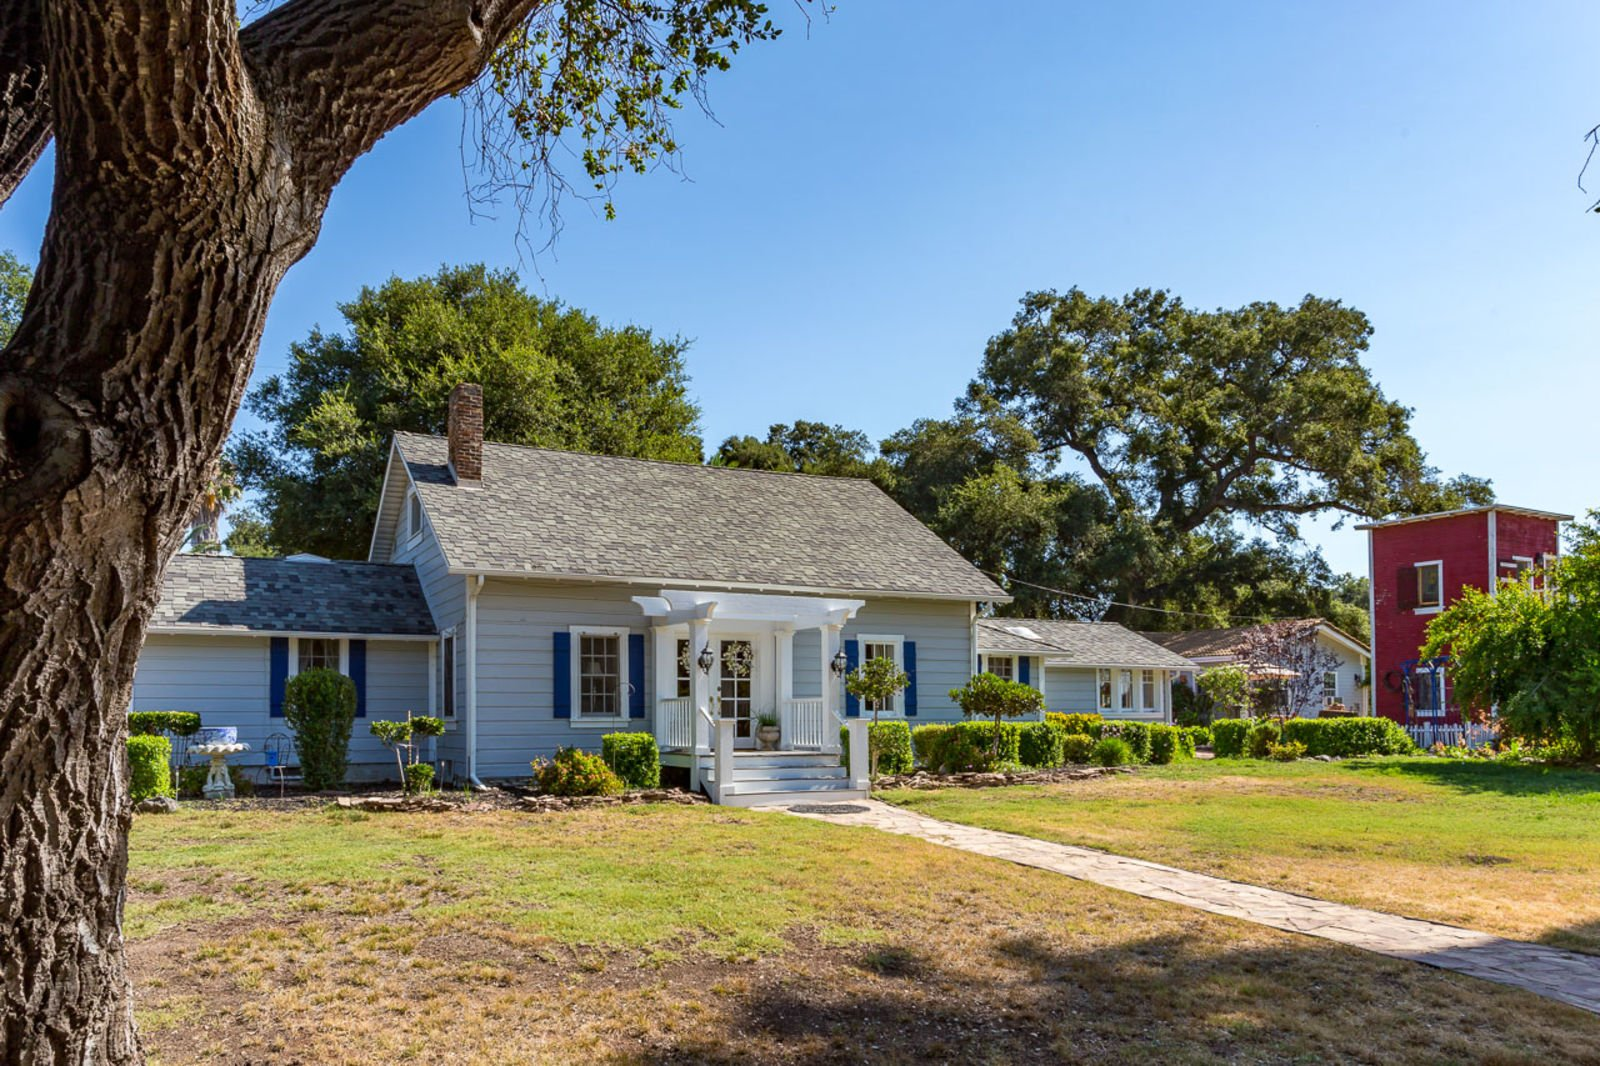 Charming Updated Historic Adobe Home in Valley Center CA for sale has a cute cottage vibe.